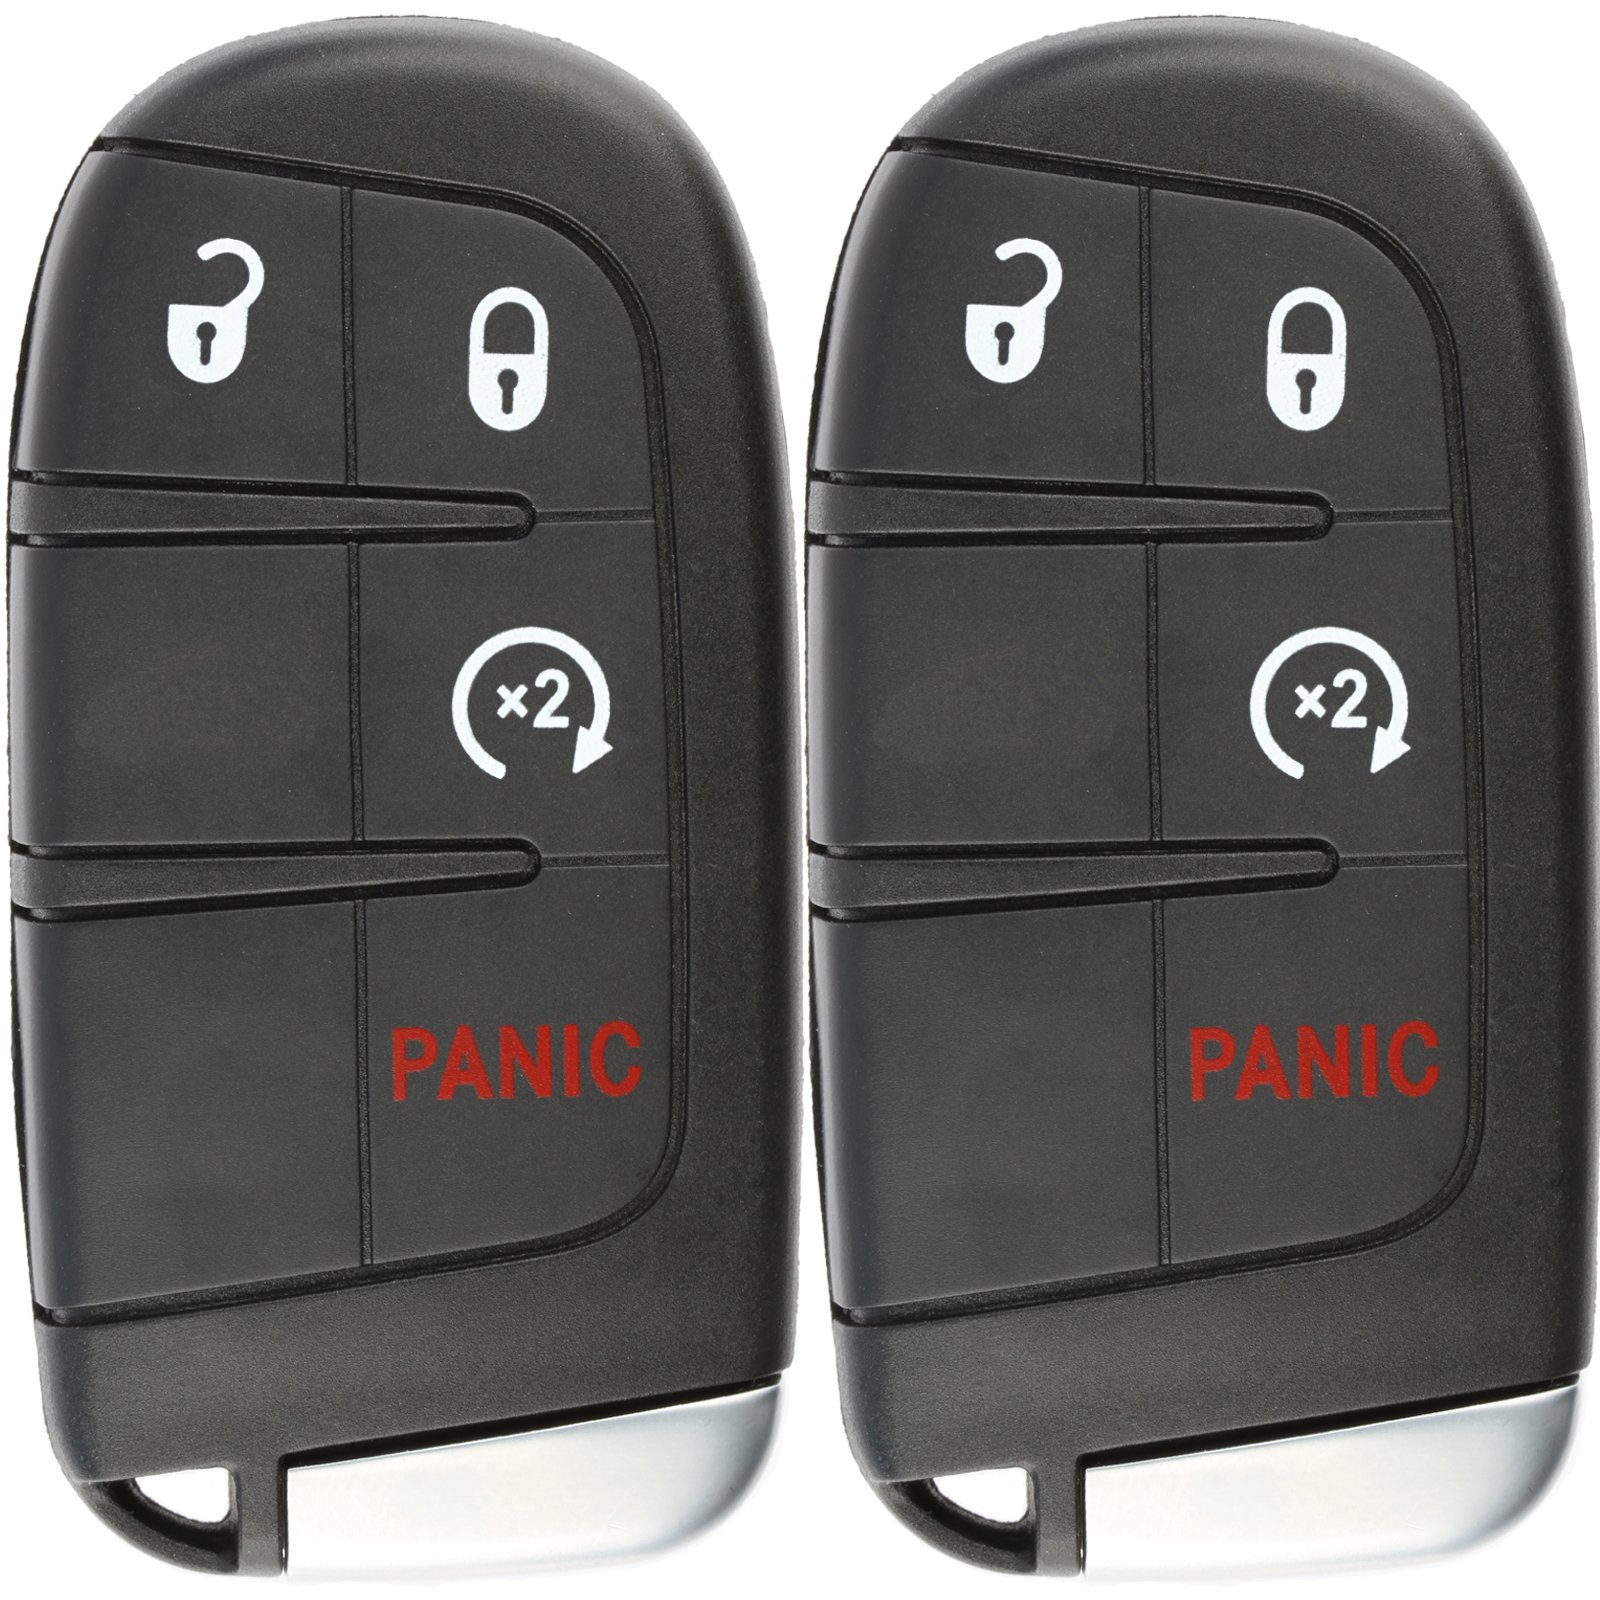 KeylessOption Keyless Entry Remote Car Smart Key Fob Starter for Dodge Journey Durango M3N-40821302 (Pack of 2)